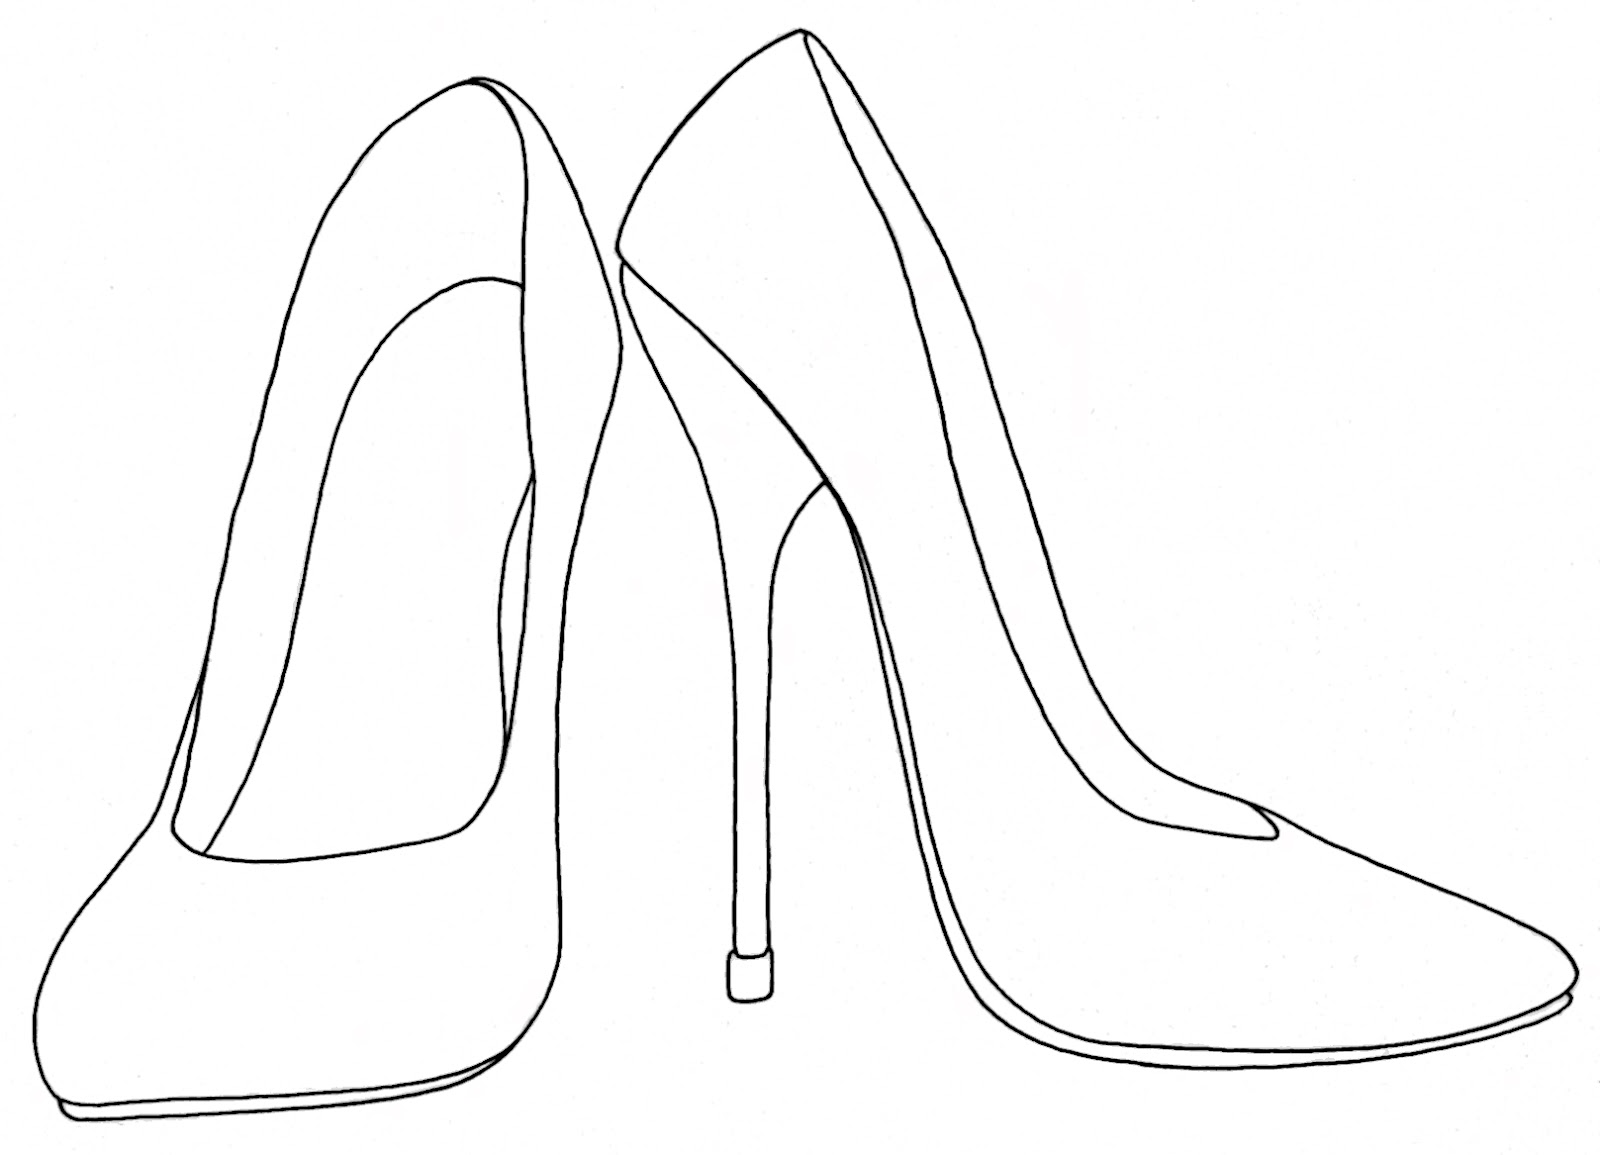 Shoe drawing template at getdrawings free for personal use 1600x1155 yucca flats nm wenchkin39s coloring pages maxwellsz